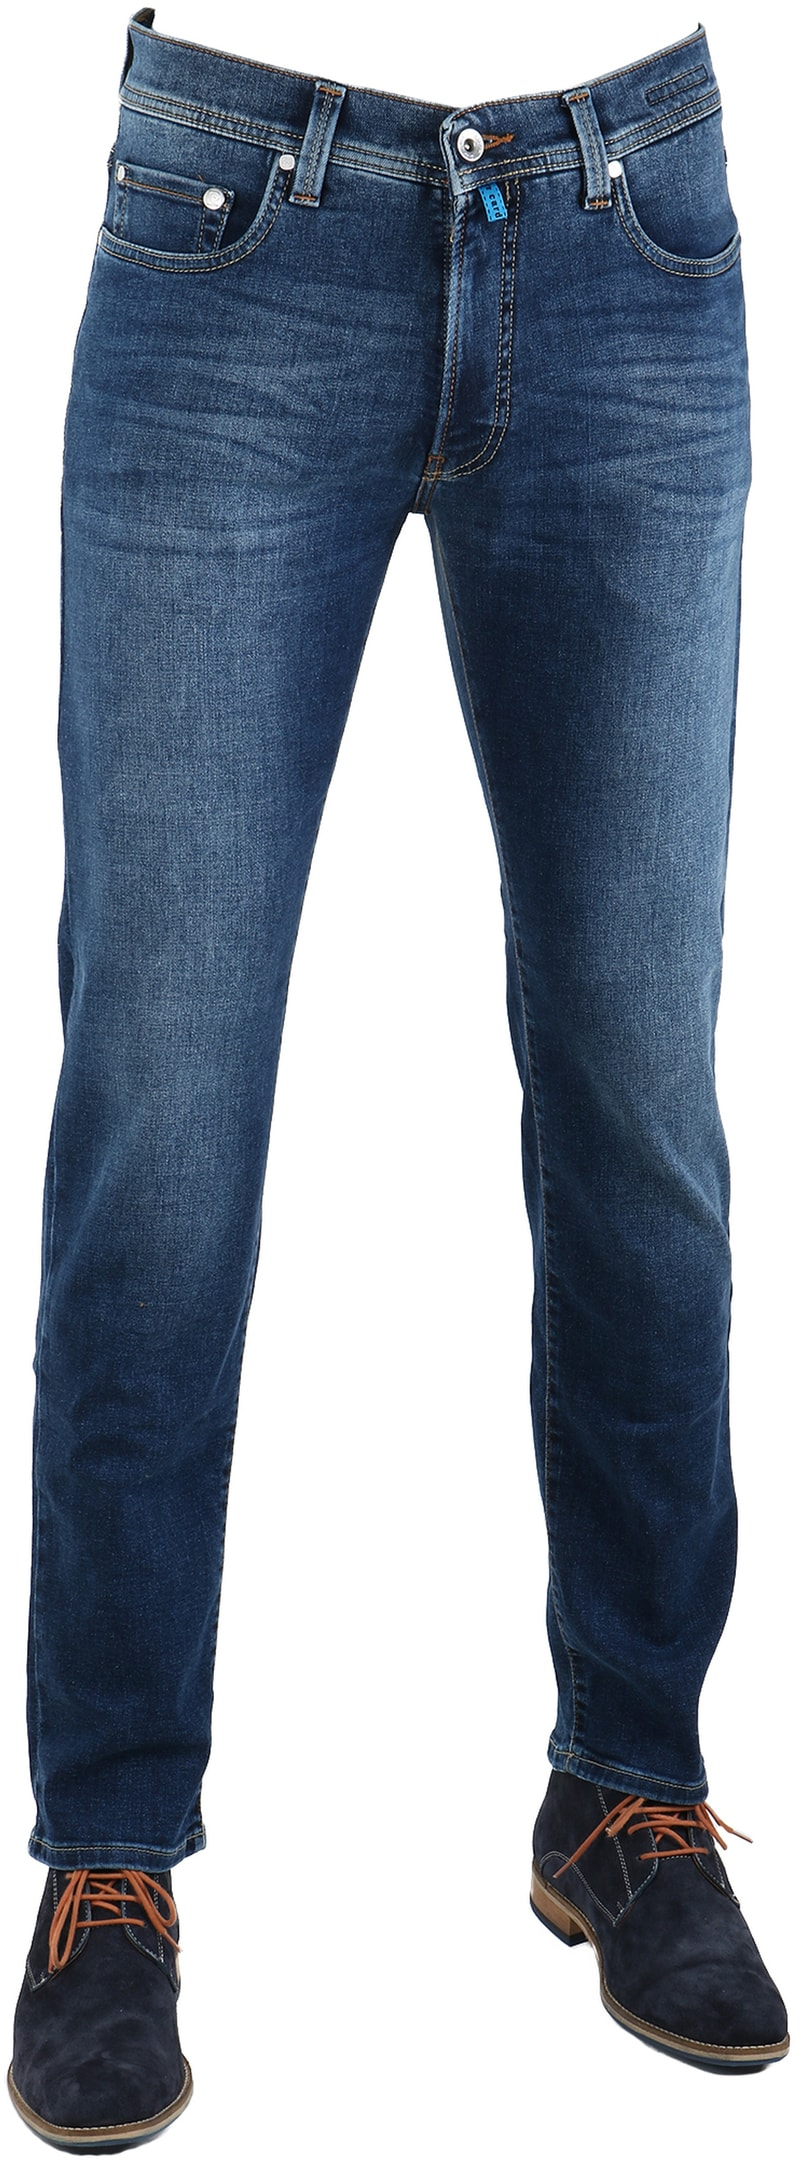 Pierre Cardin Lyon Jeans Future Flex 3451 03451/000/08880 01 | Suitable